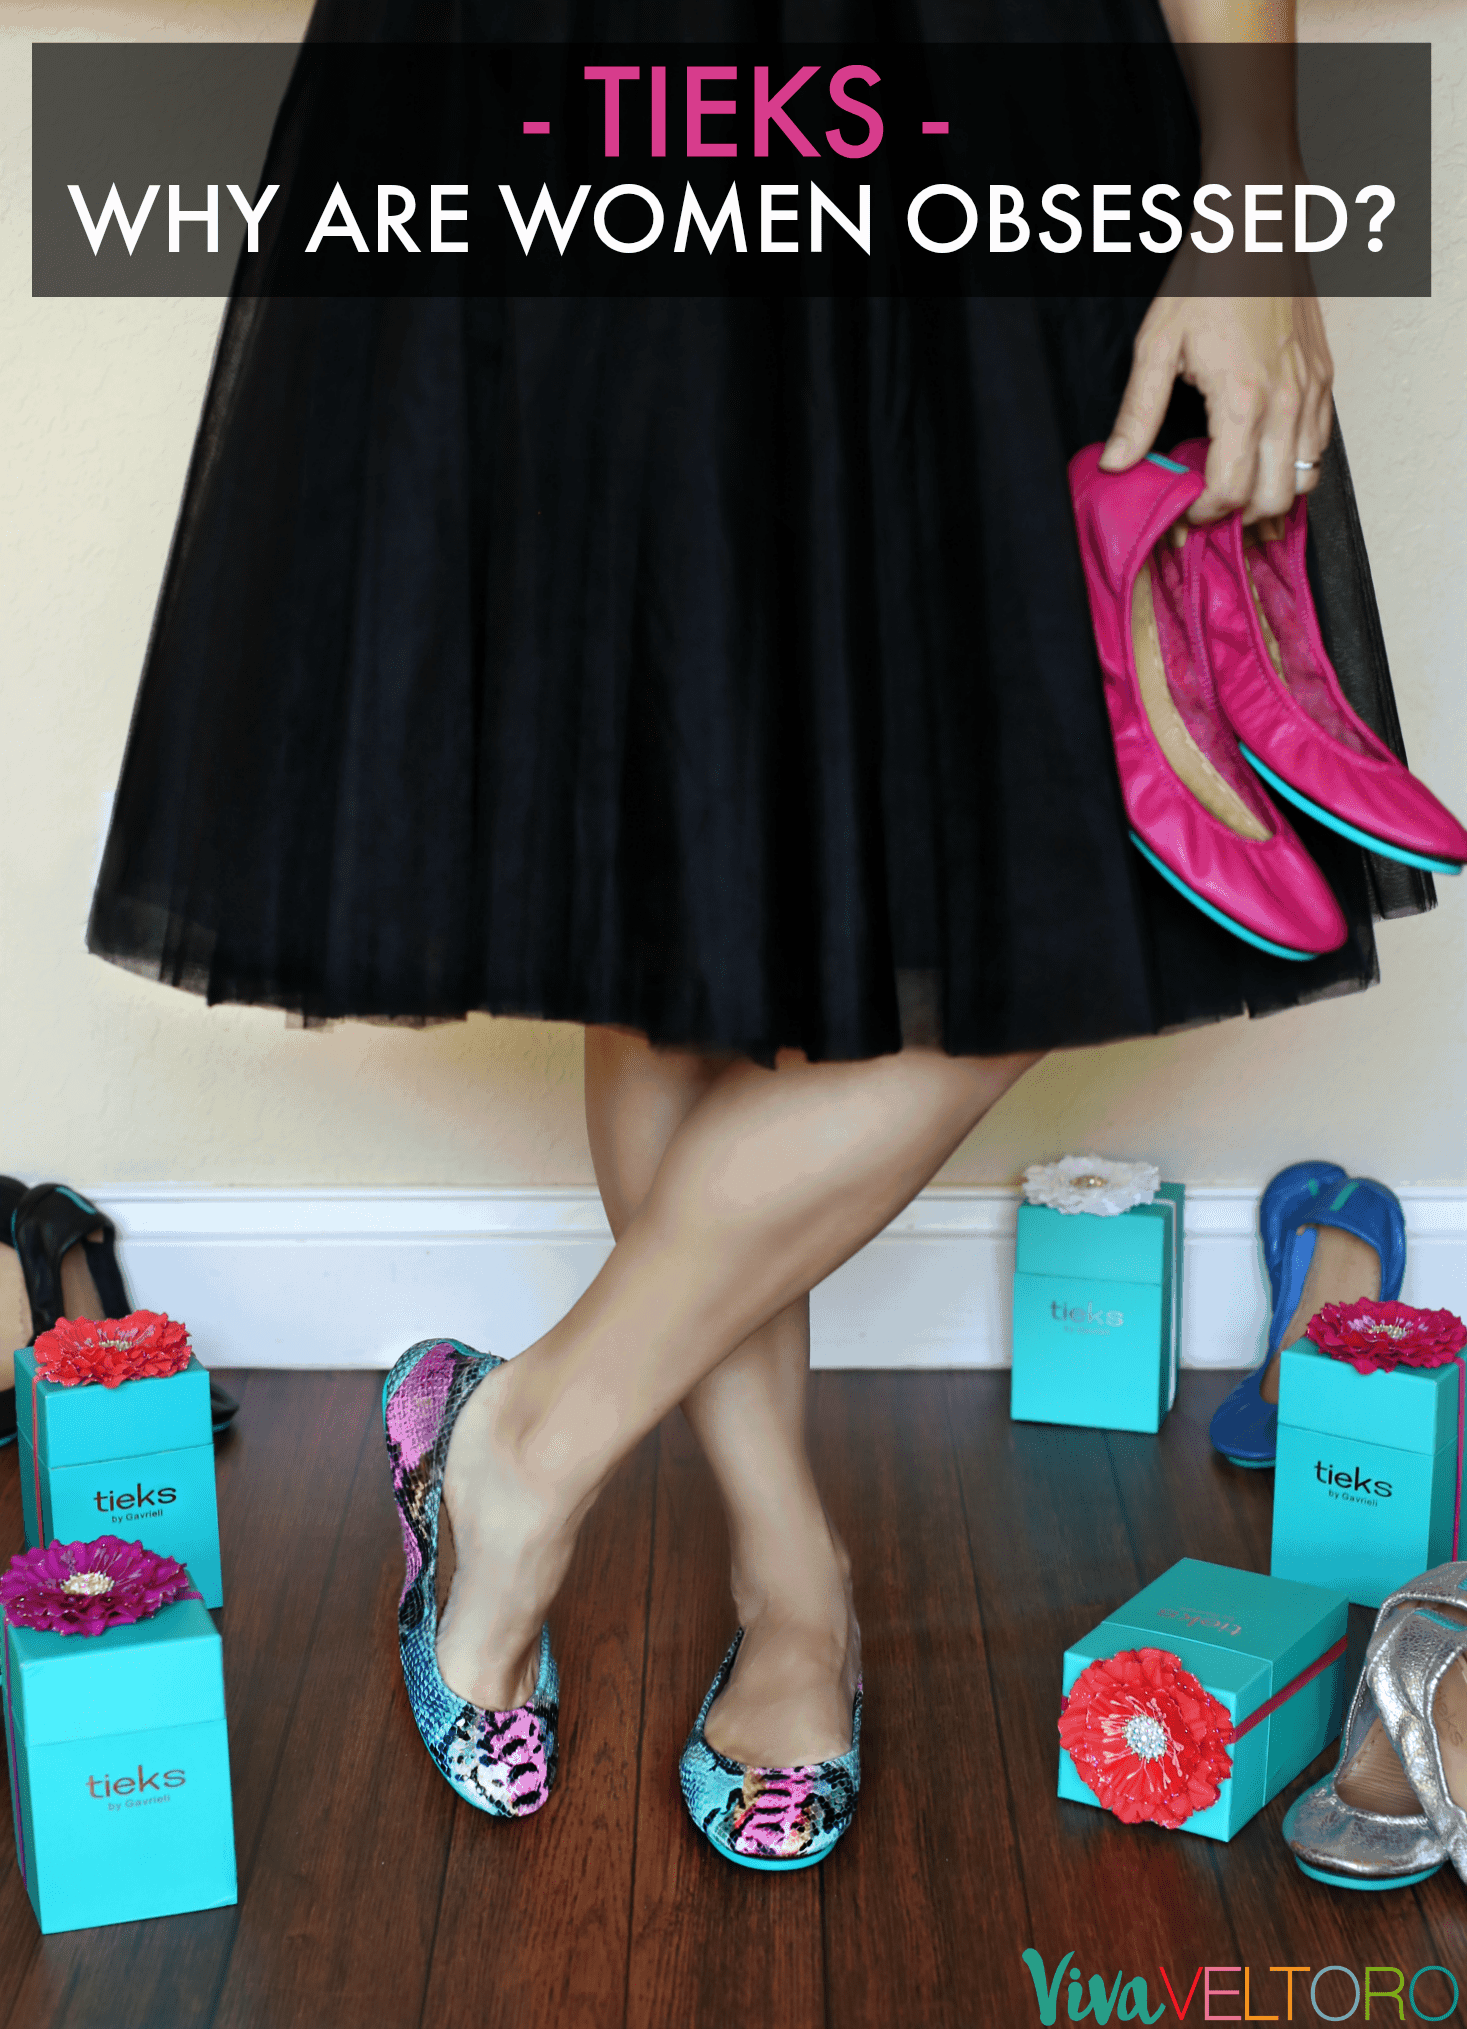 f1931570b1 Why Are Women Obsessed With Tieks  My Honest Review of Tieks Ballet Flats.